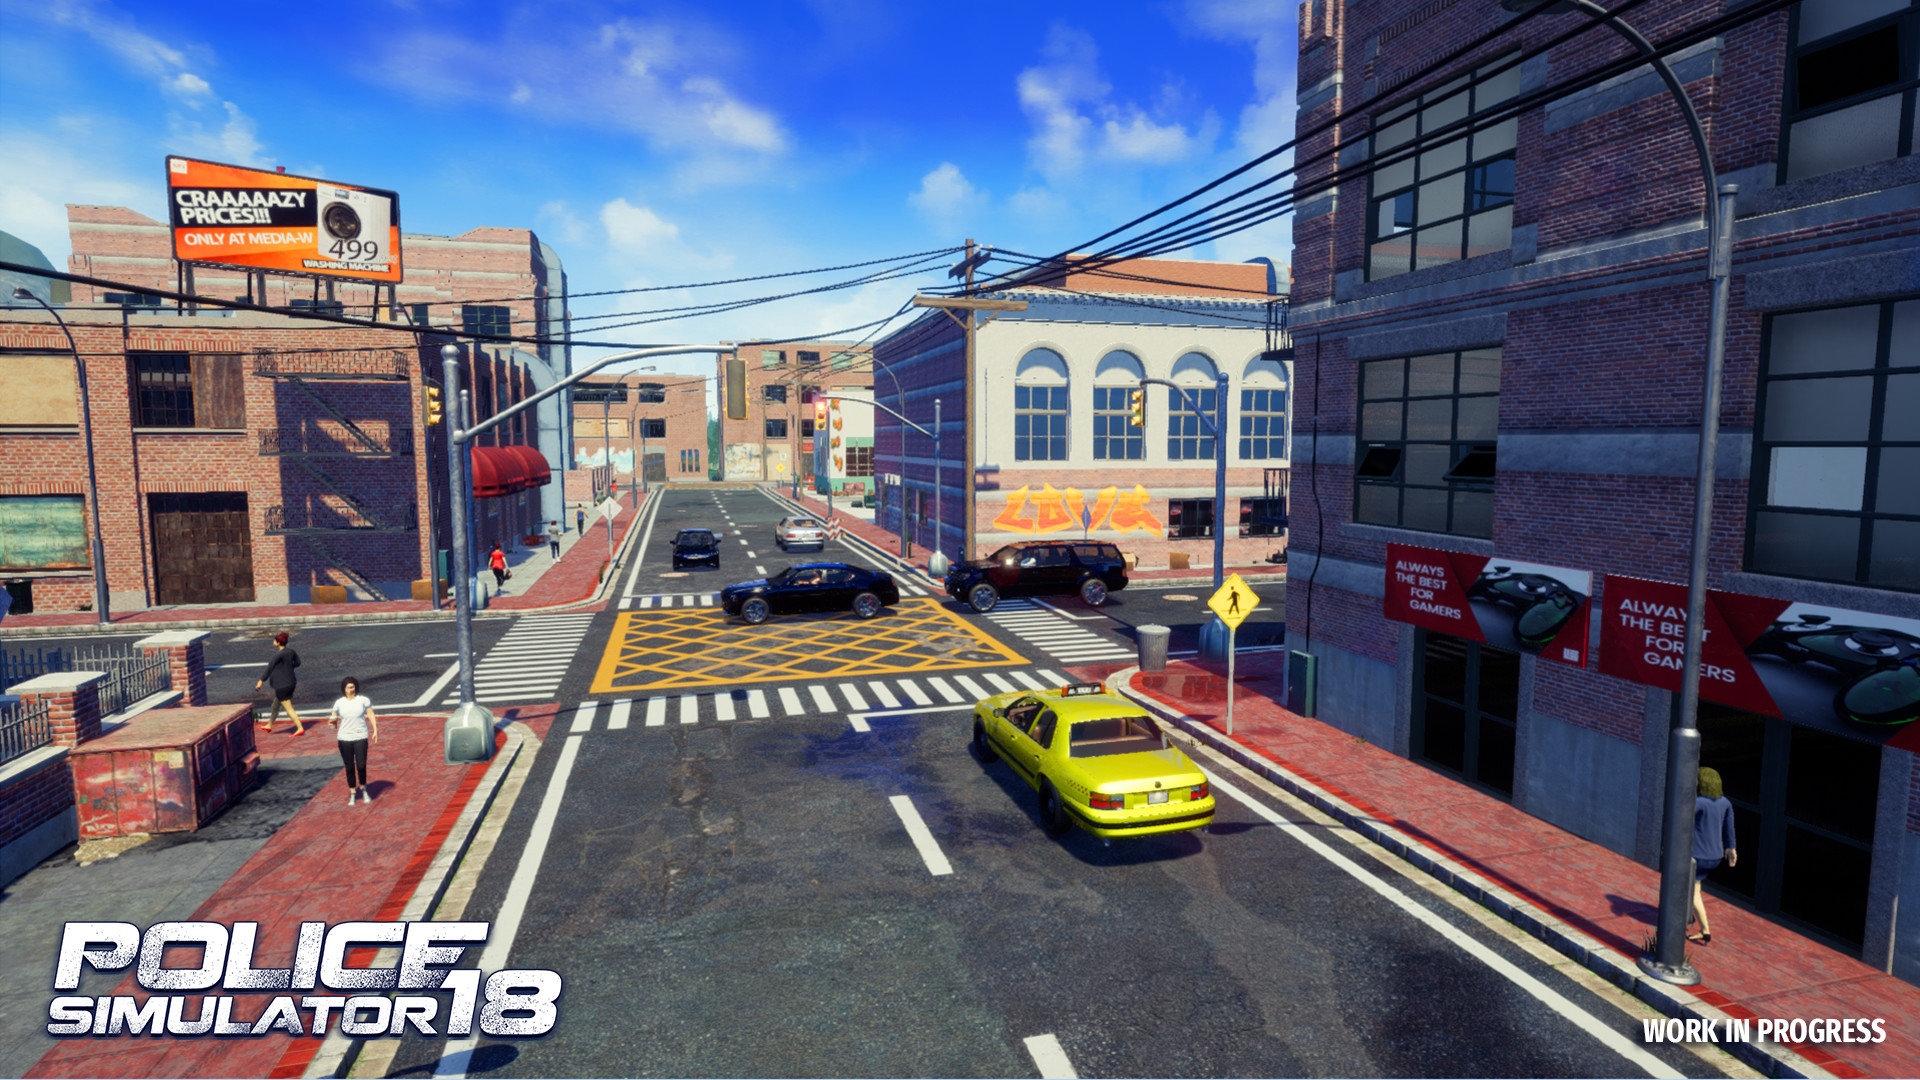 Police Simulator 18 System Requirements - Can I Run It